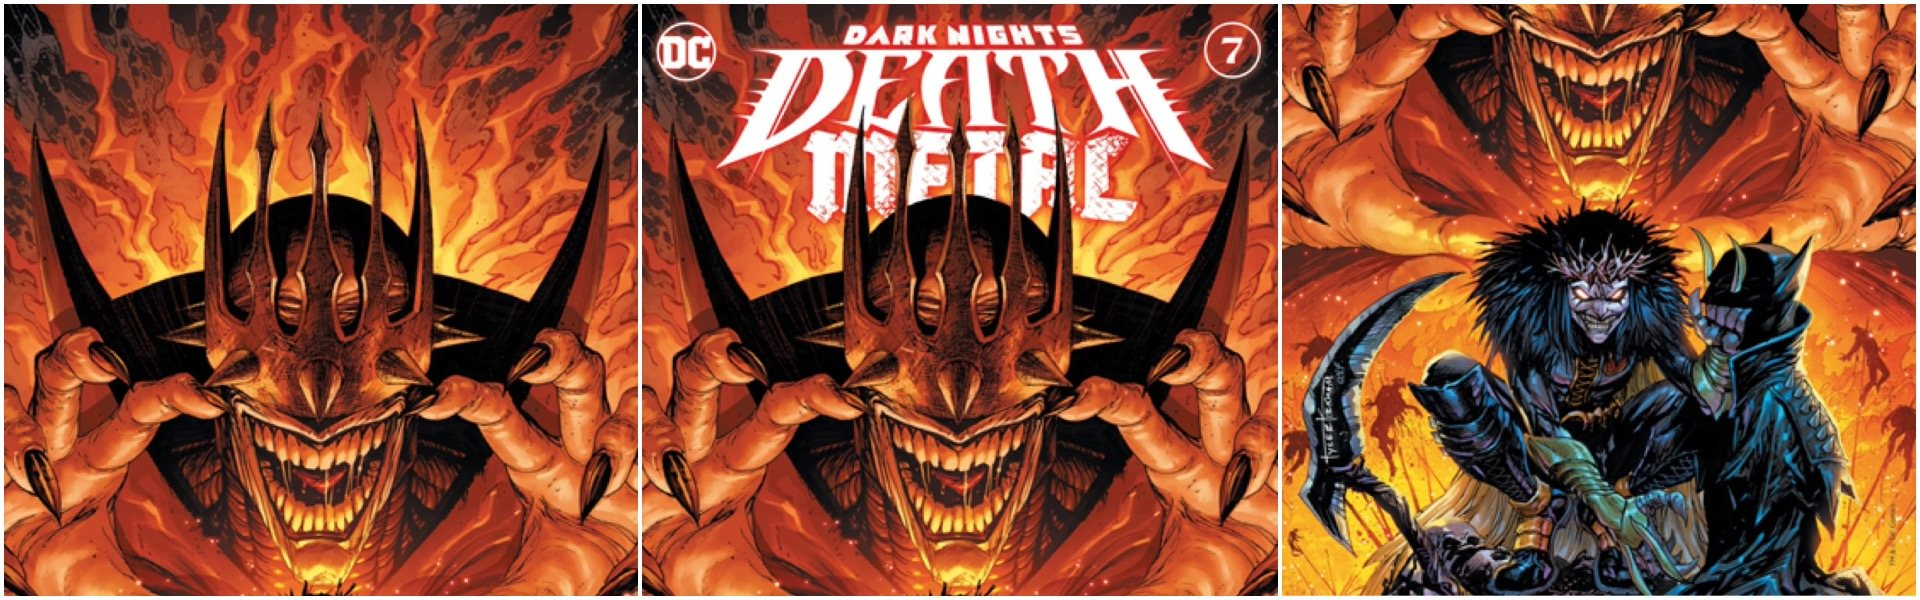 Dark Nights Death Metal #7 Tyler Kirkham Variants